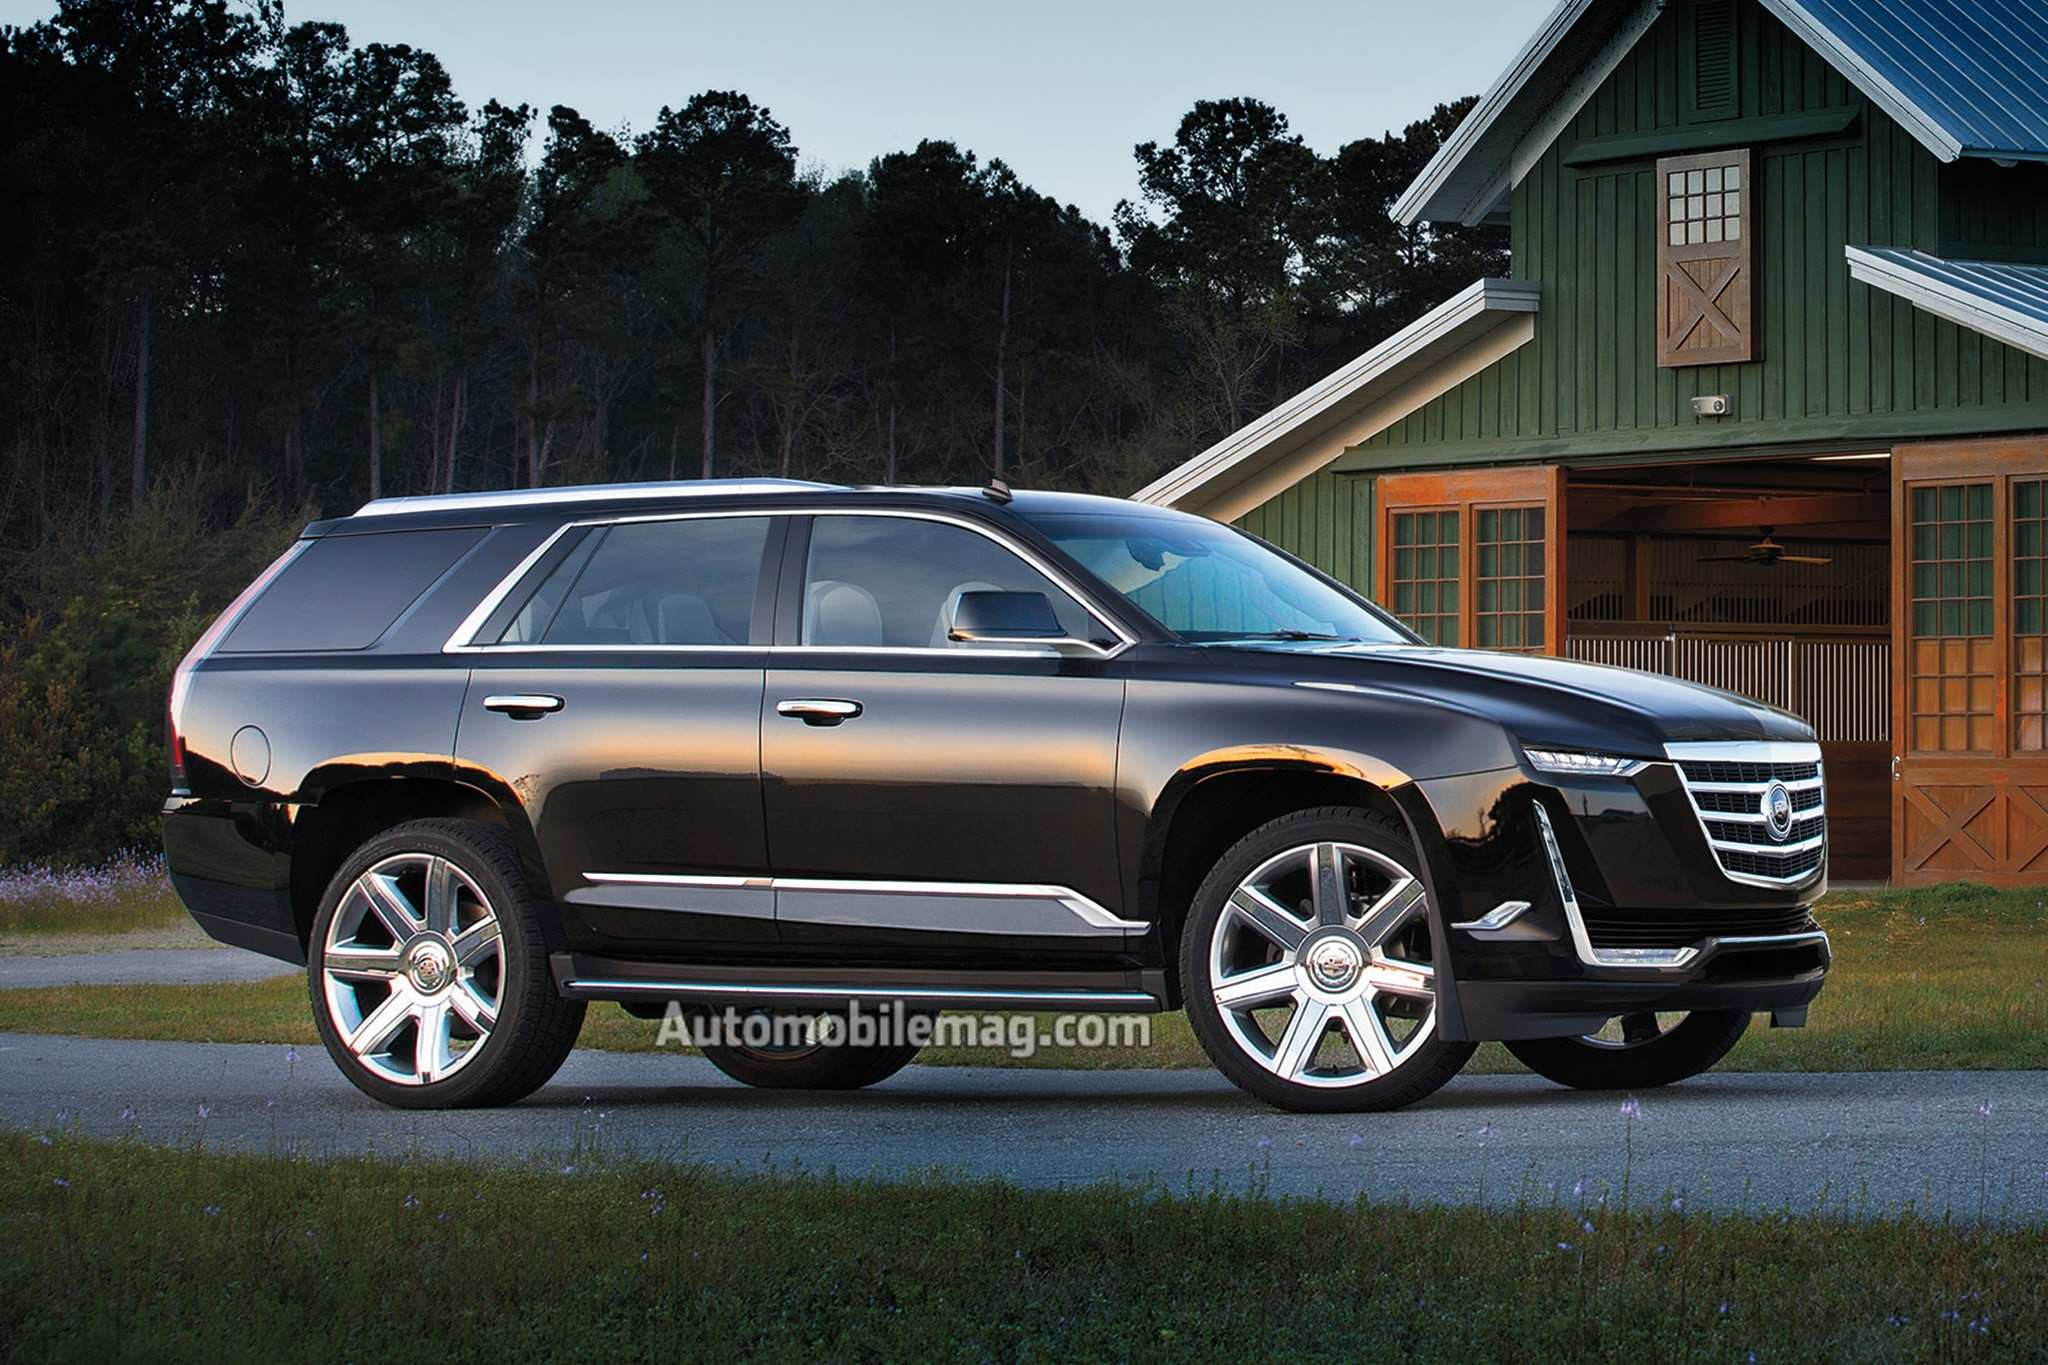 98 All New What Will The 2020 Cadillac Escalade Look Like Model